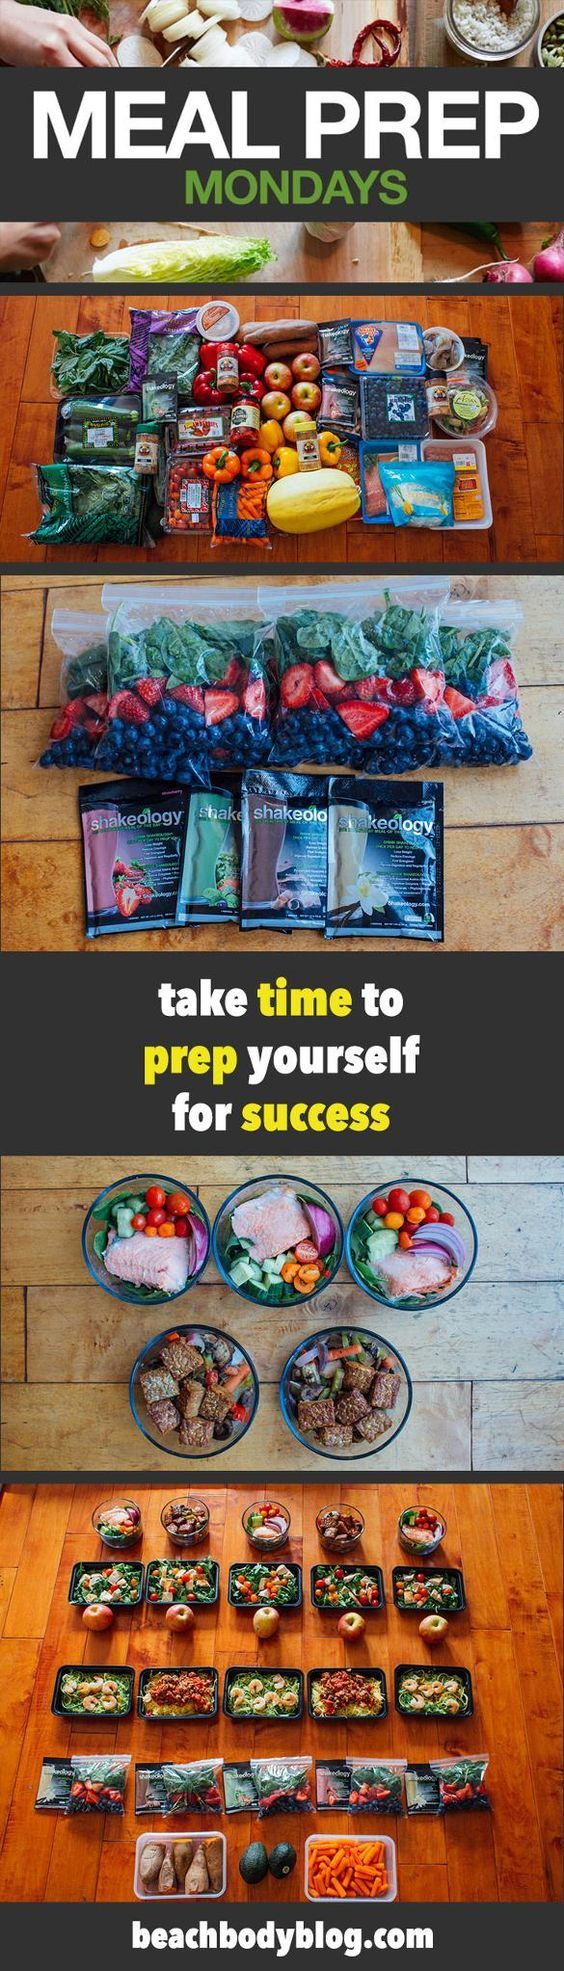 This Week, We Make Meal Prep Easy With Smoothie Bags For Shakeology  Breakfasts Find